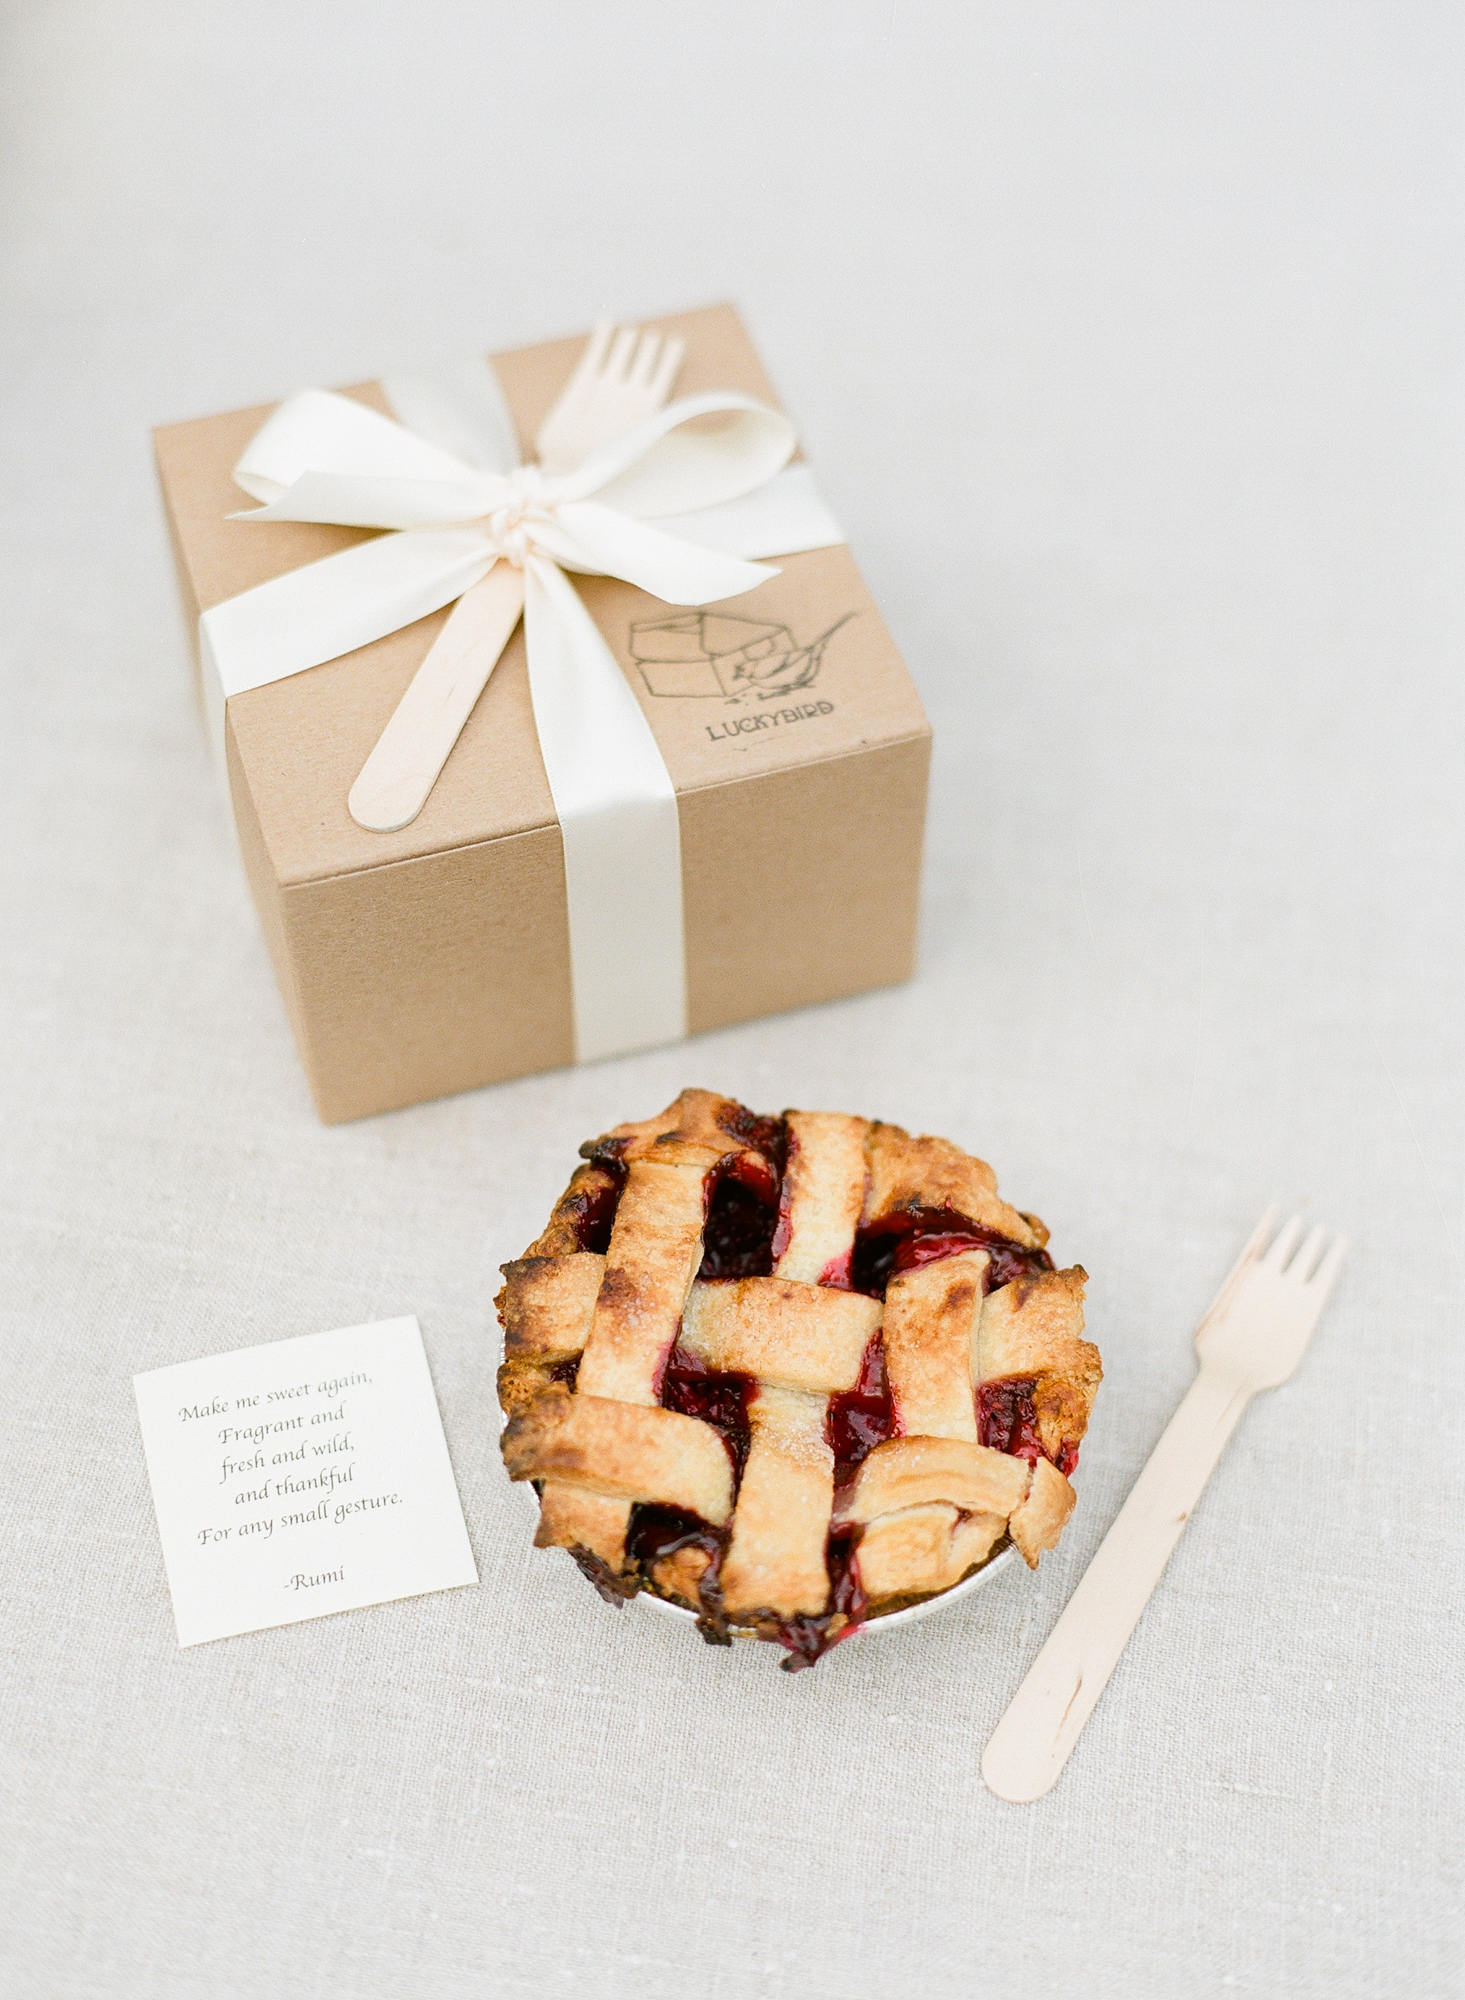 By the end of the night, guests have already indulged in cake, so why not send them home with a single-portion pie to go like this treat from Luckybird Bakery?